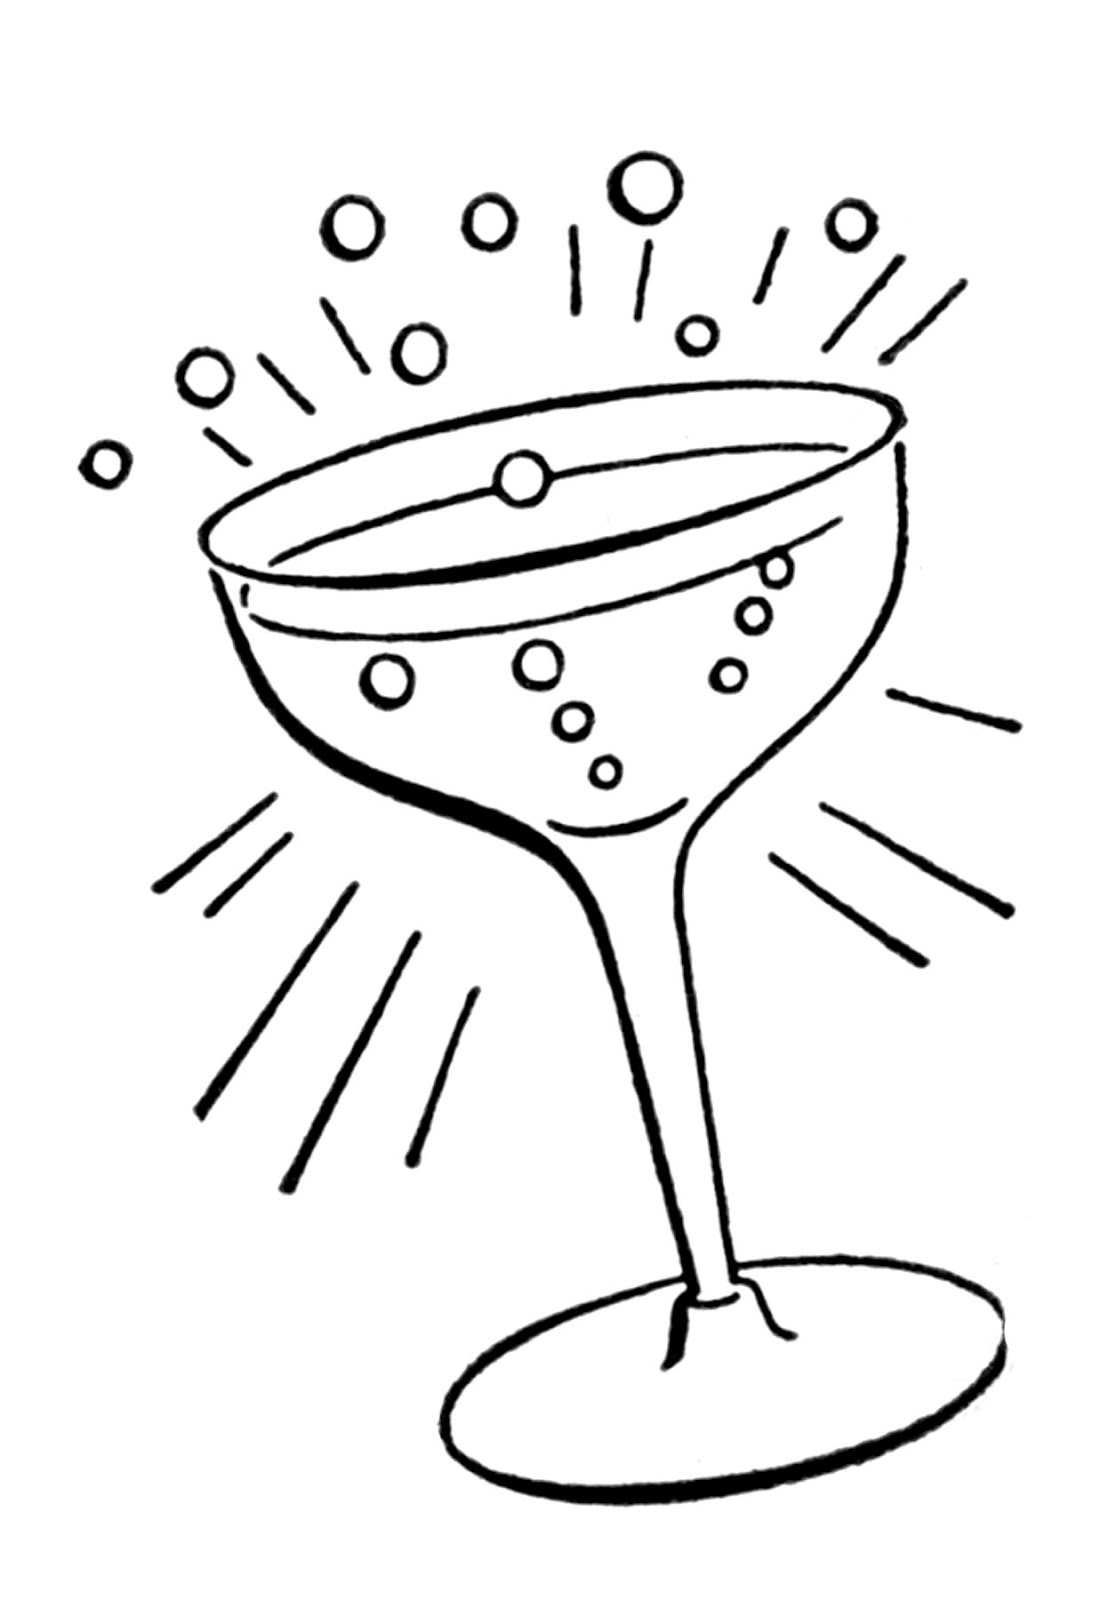 Drink clipart retro cocktail Cocktail image glass drawings fairy